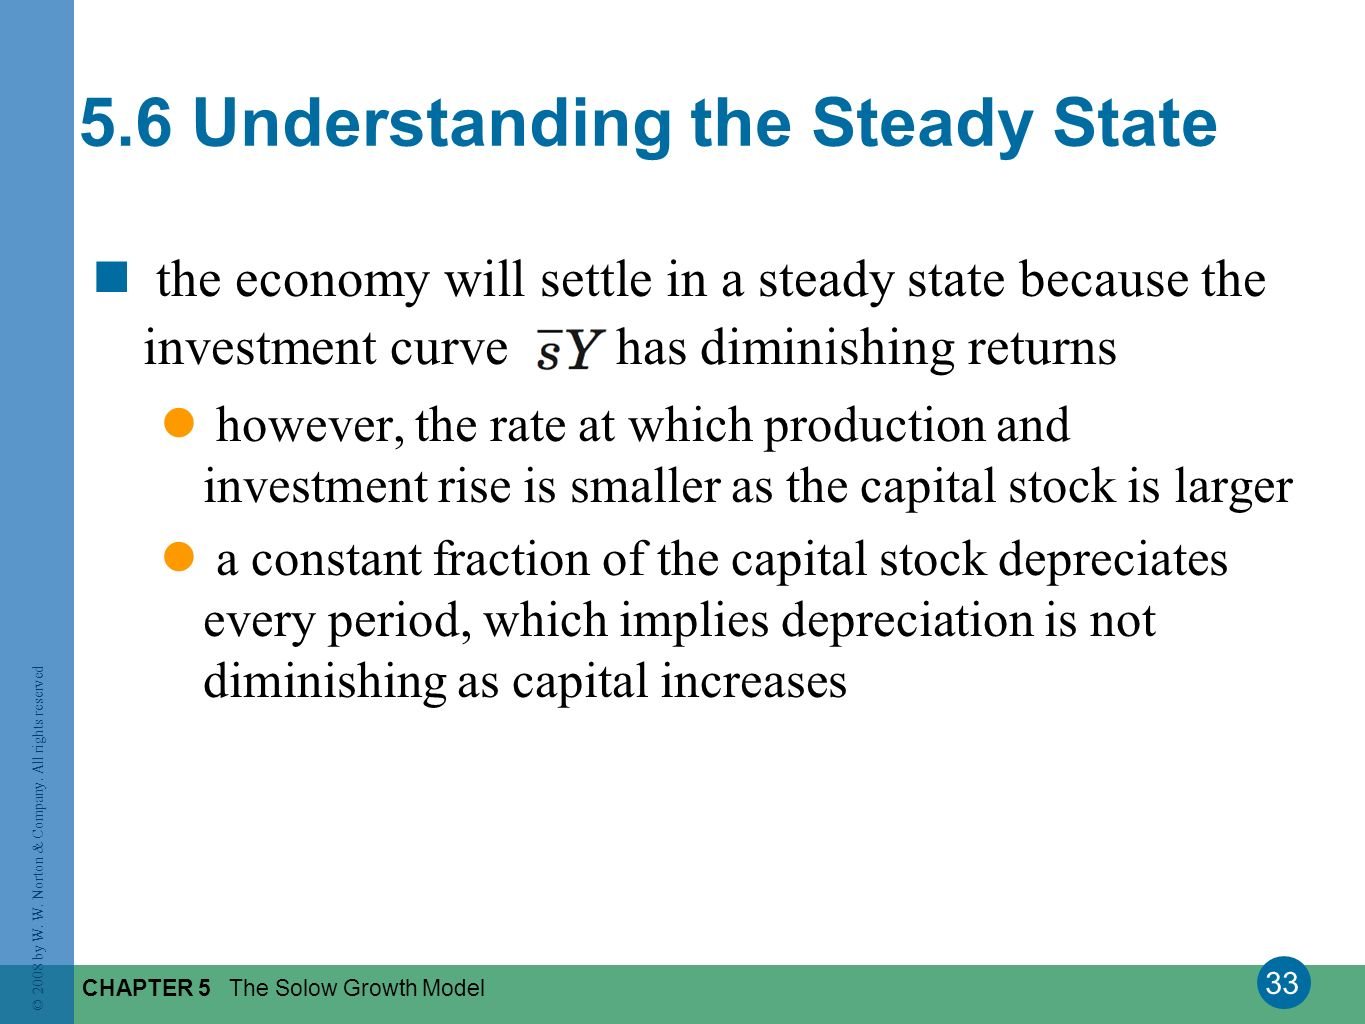 5.6 Understanding the Steady State